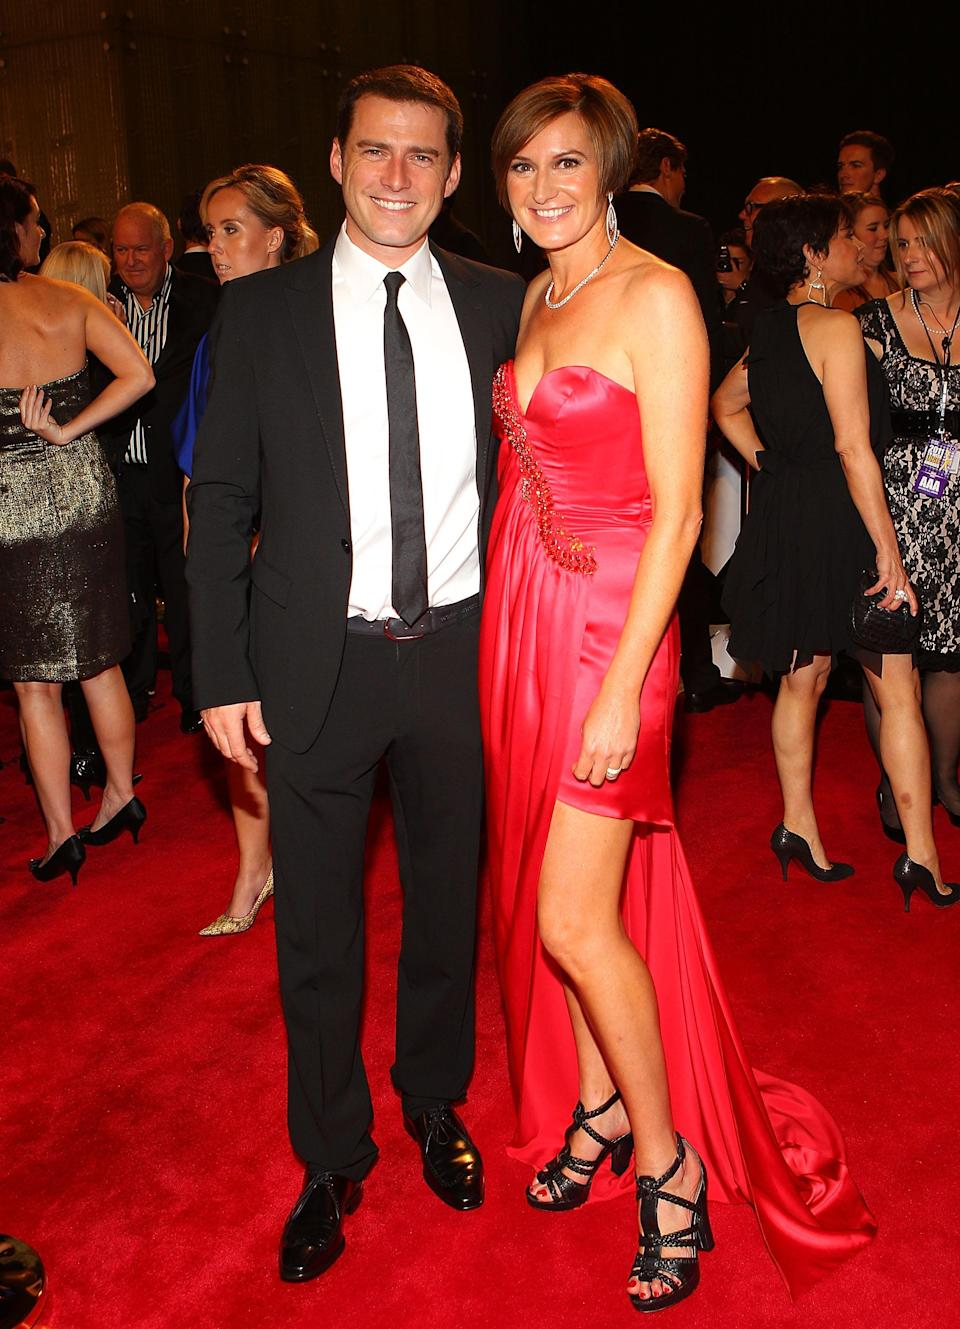 Cass and ex-husband Karl Stefanovic split in 2016. Photo: Getty